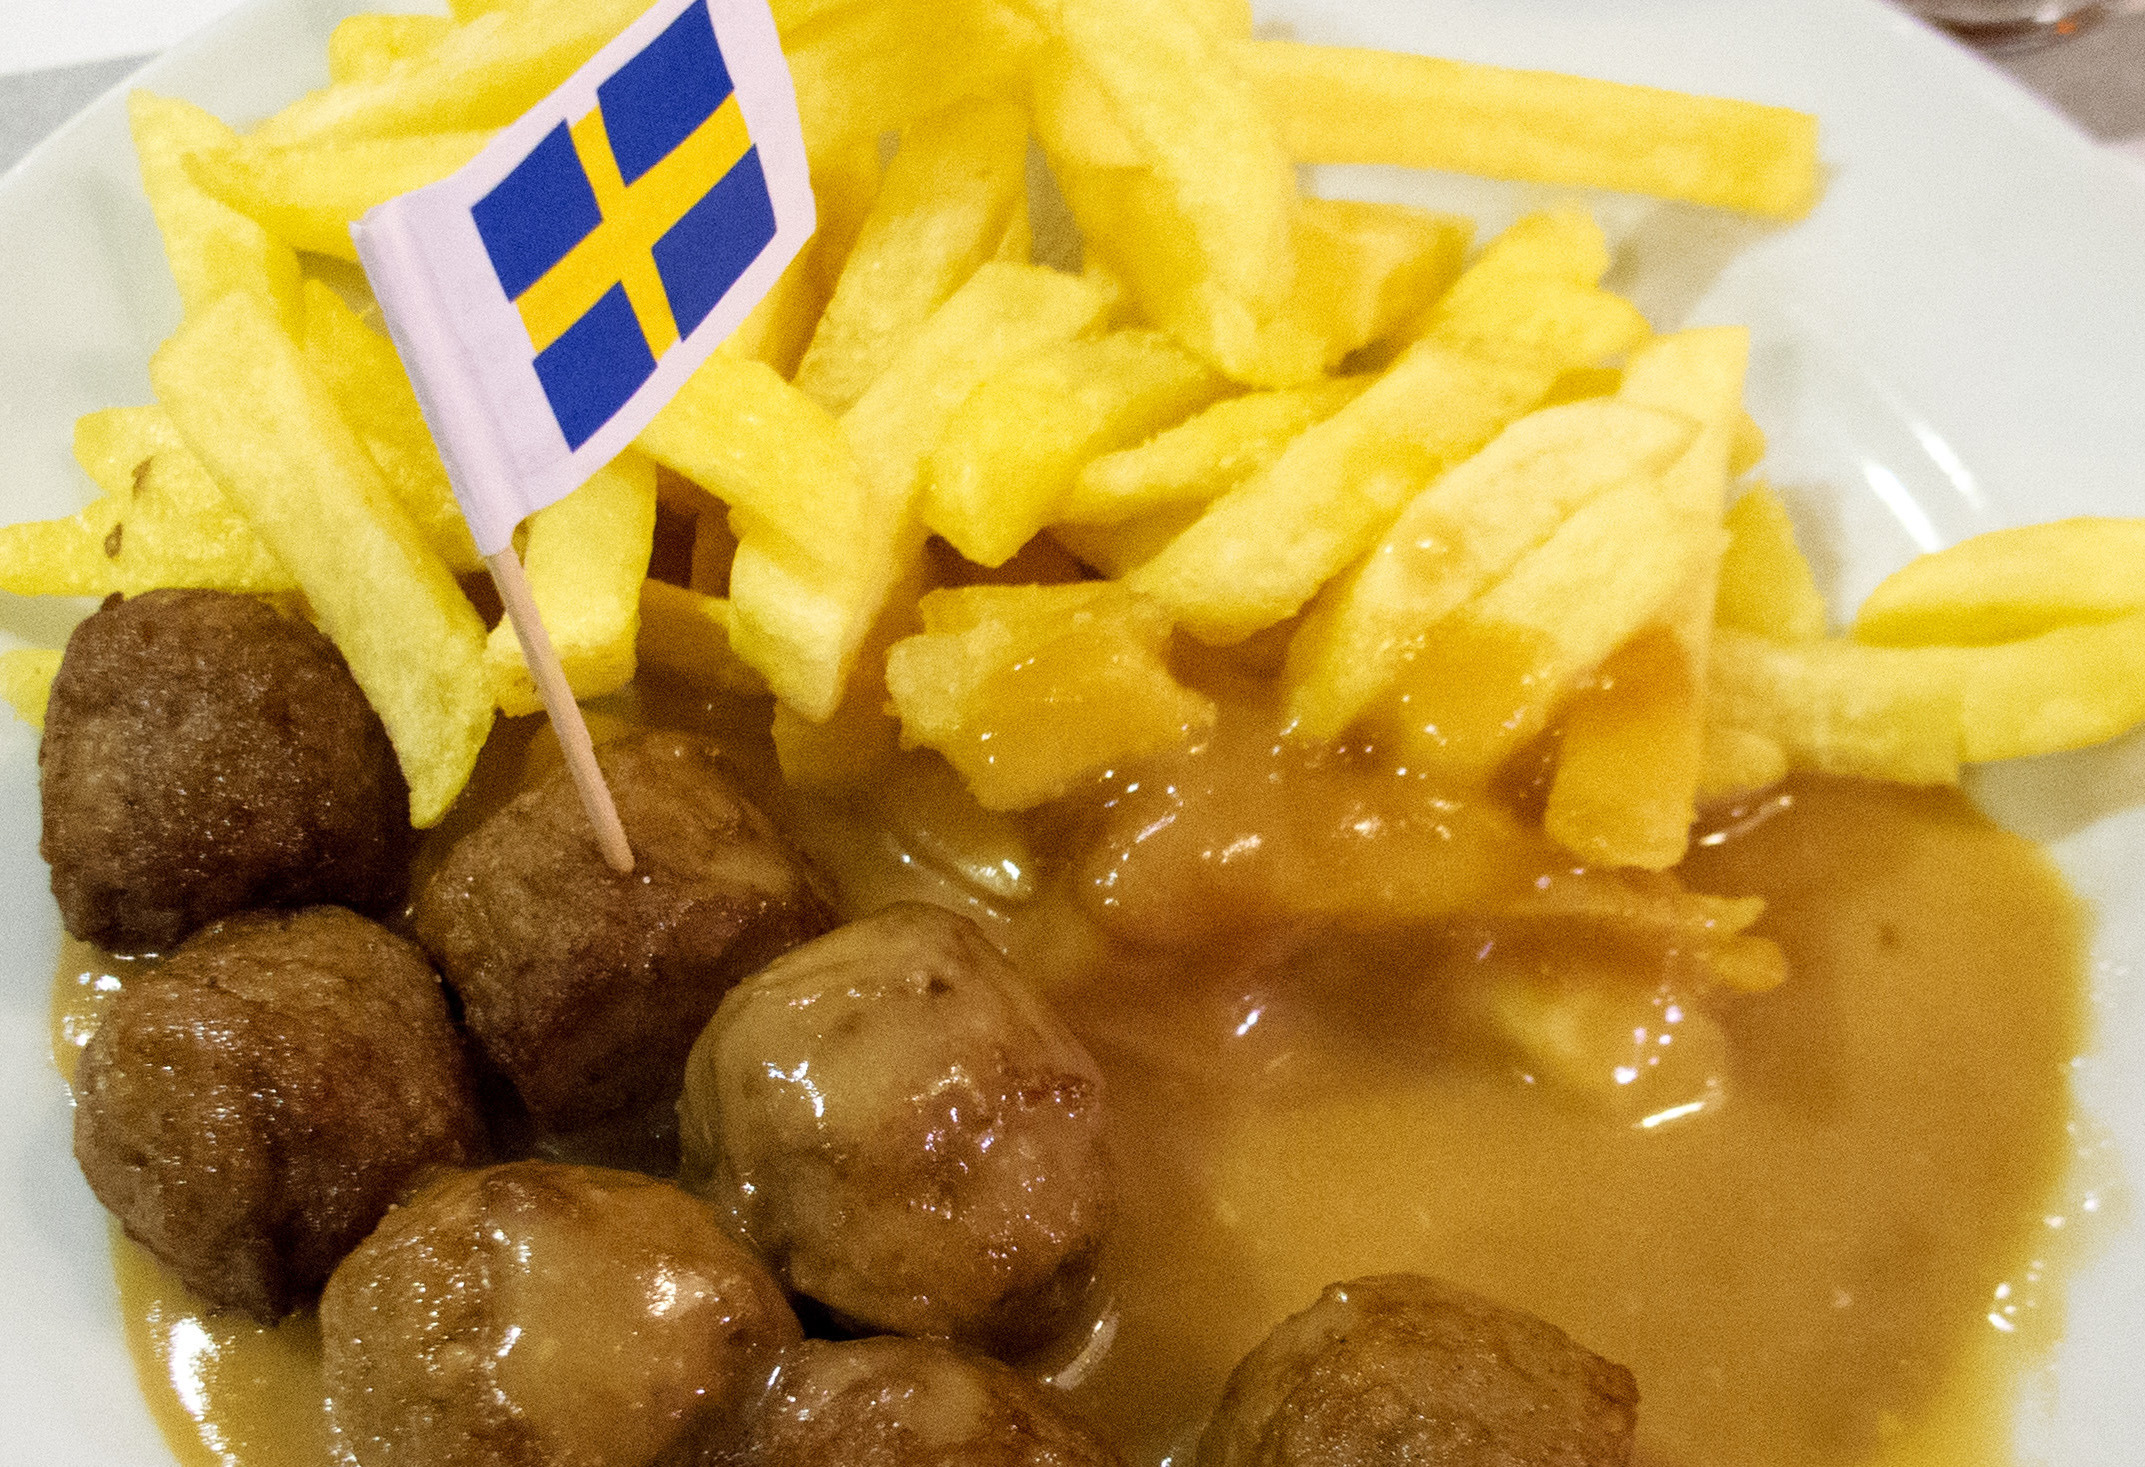 IKEA bosses say they hope to have them out by next year. Credit: PA